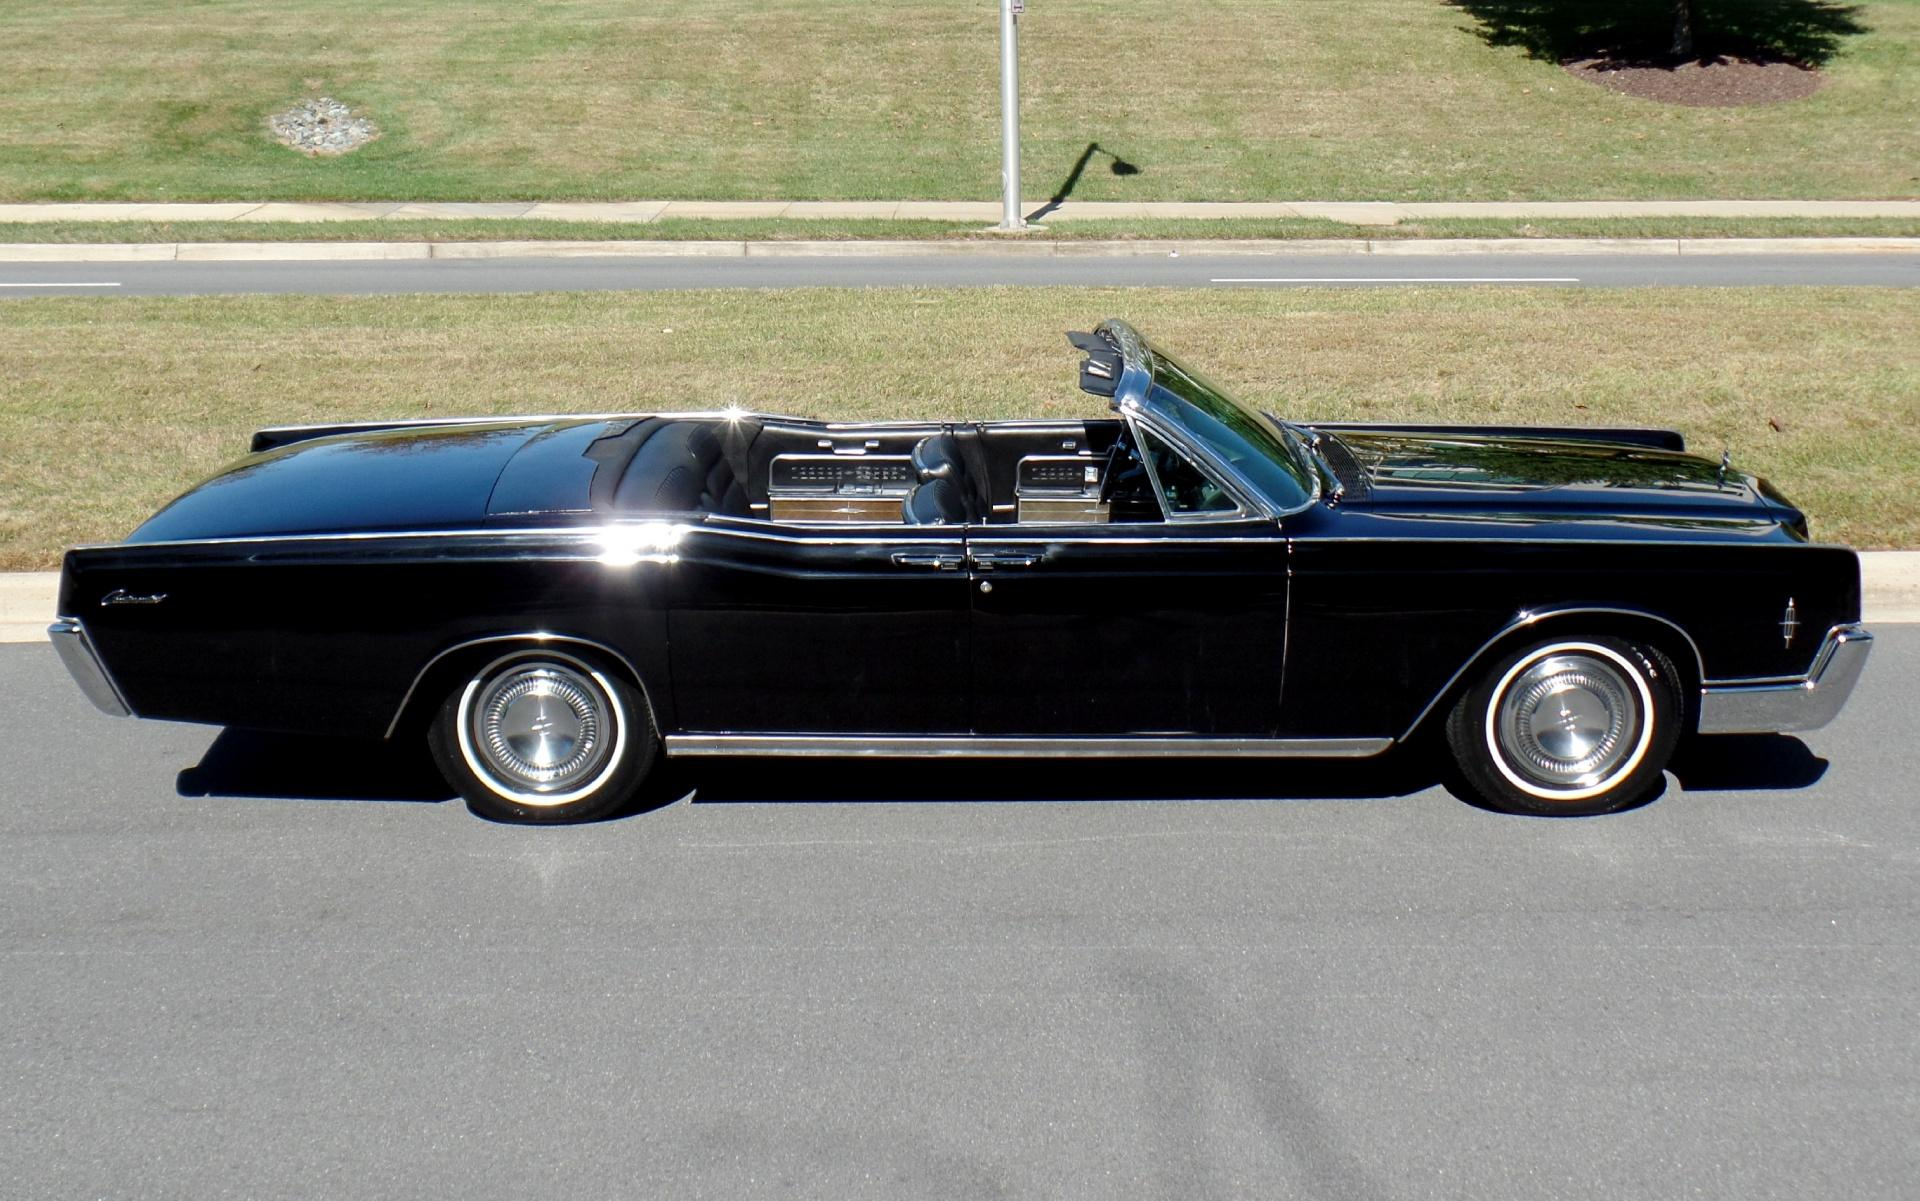 1966 Lincoln Continental Triple Black Suicide Door Convertible 1 Of Only  3,180 Produced!